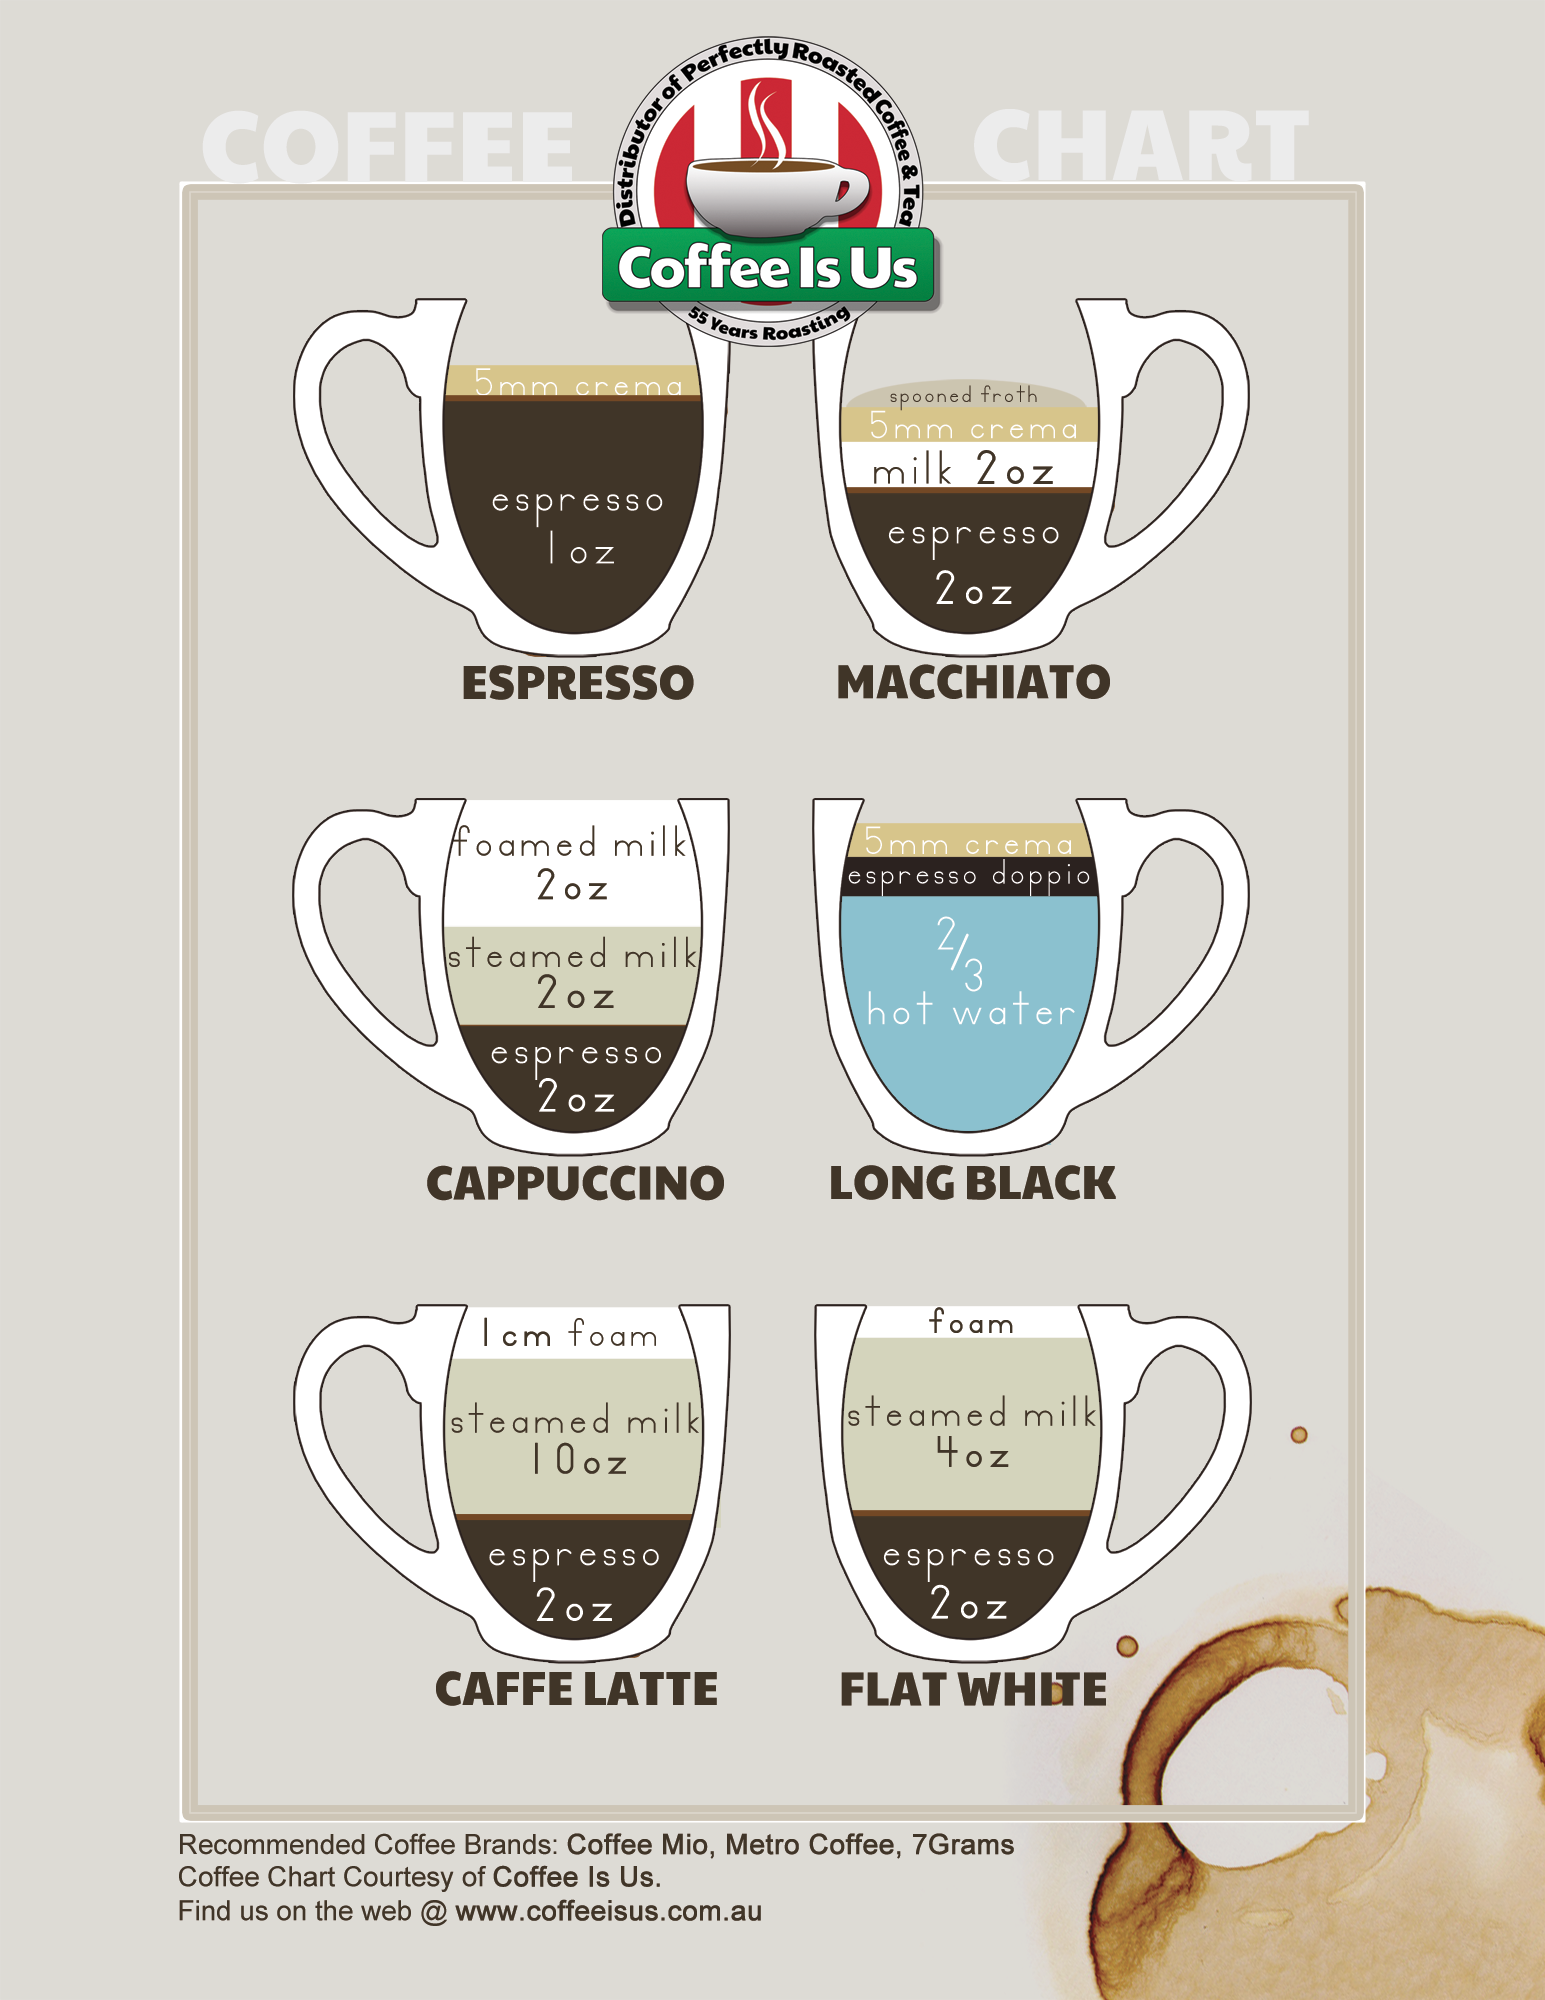 Coffee Is Us Coffee Chart by fireproofgfx